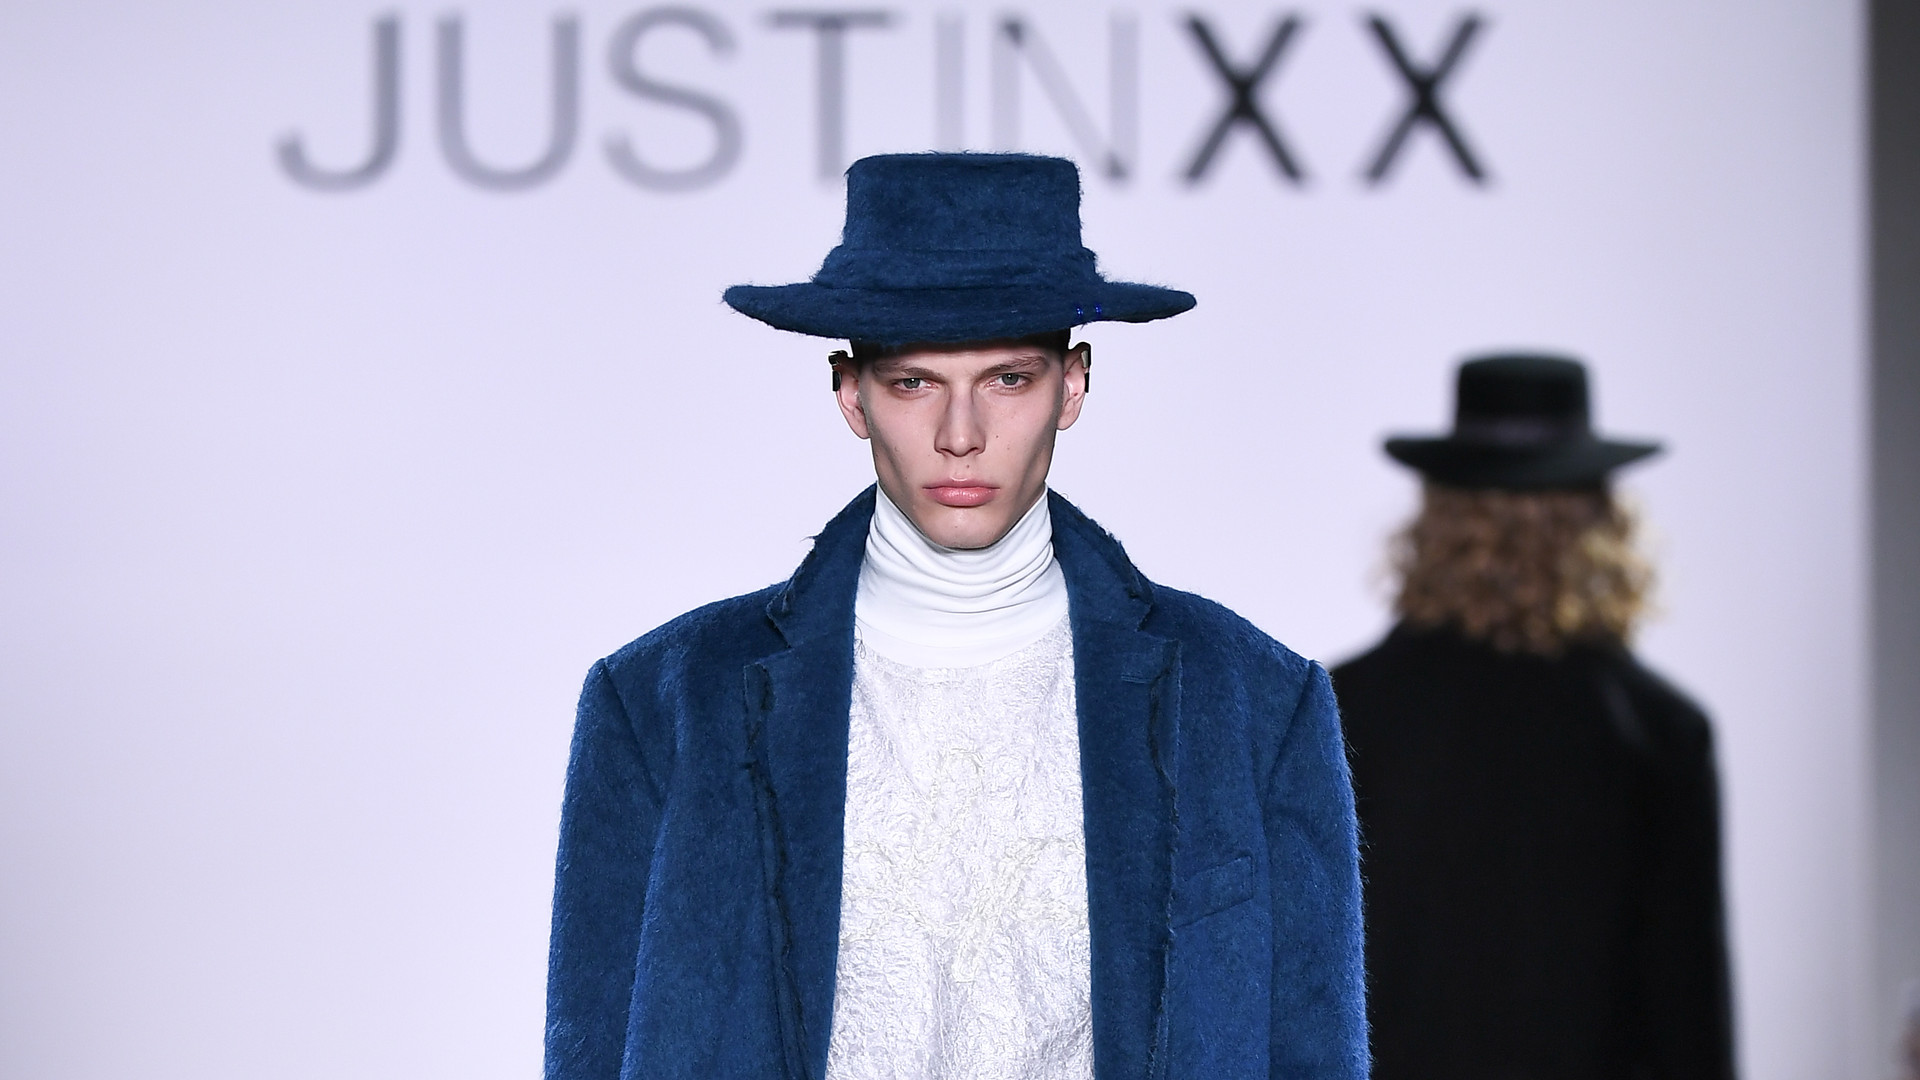 JUST IN XX AW20 NEW YORK RUNWAY PRESENTATION